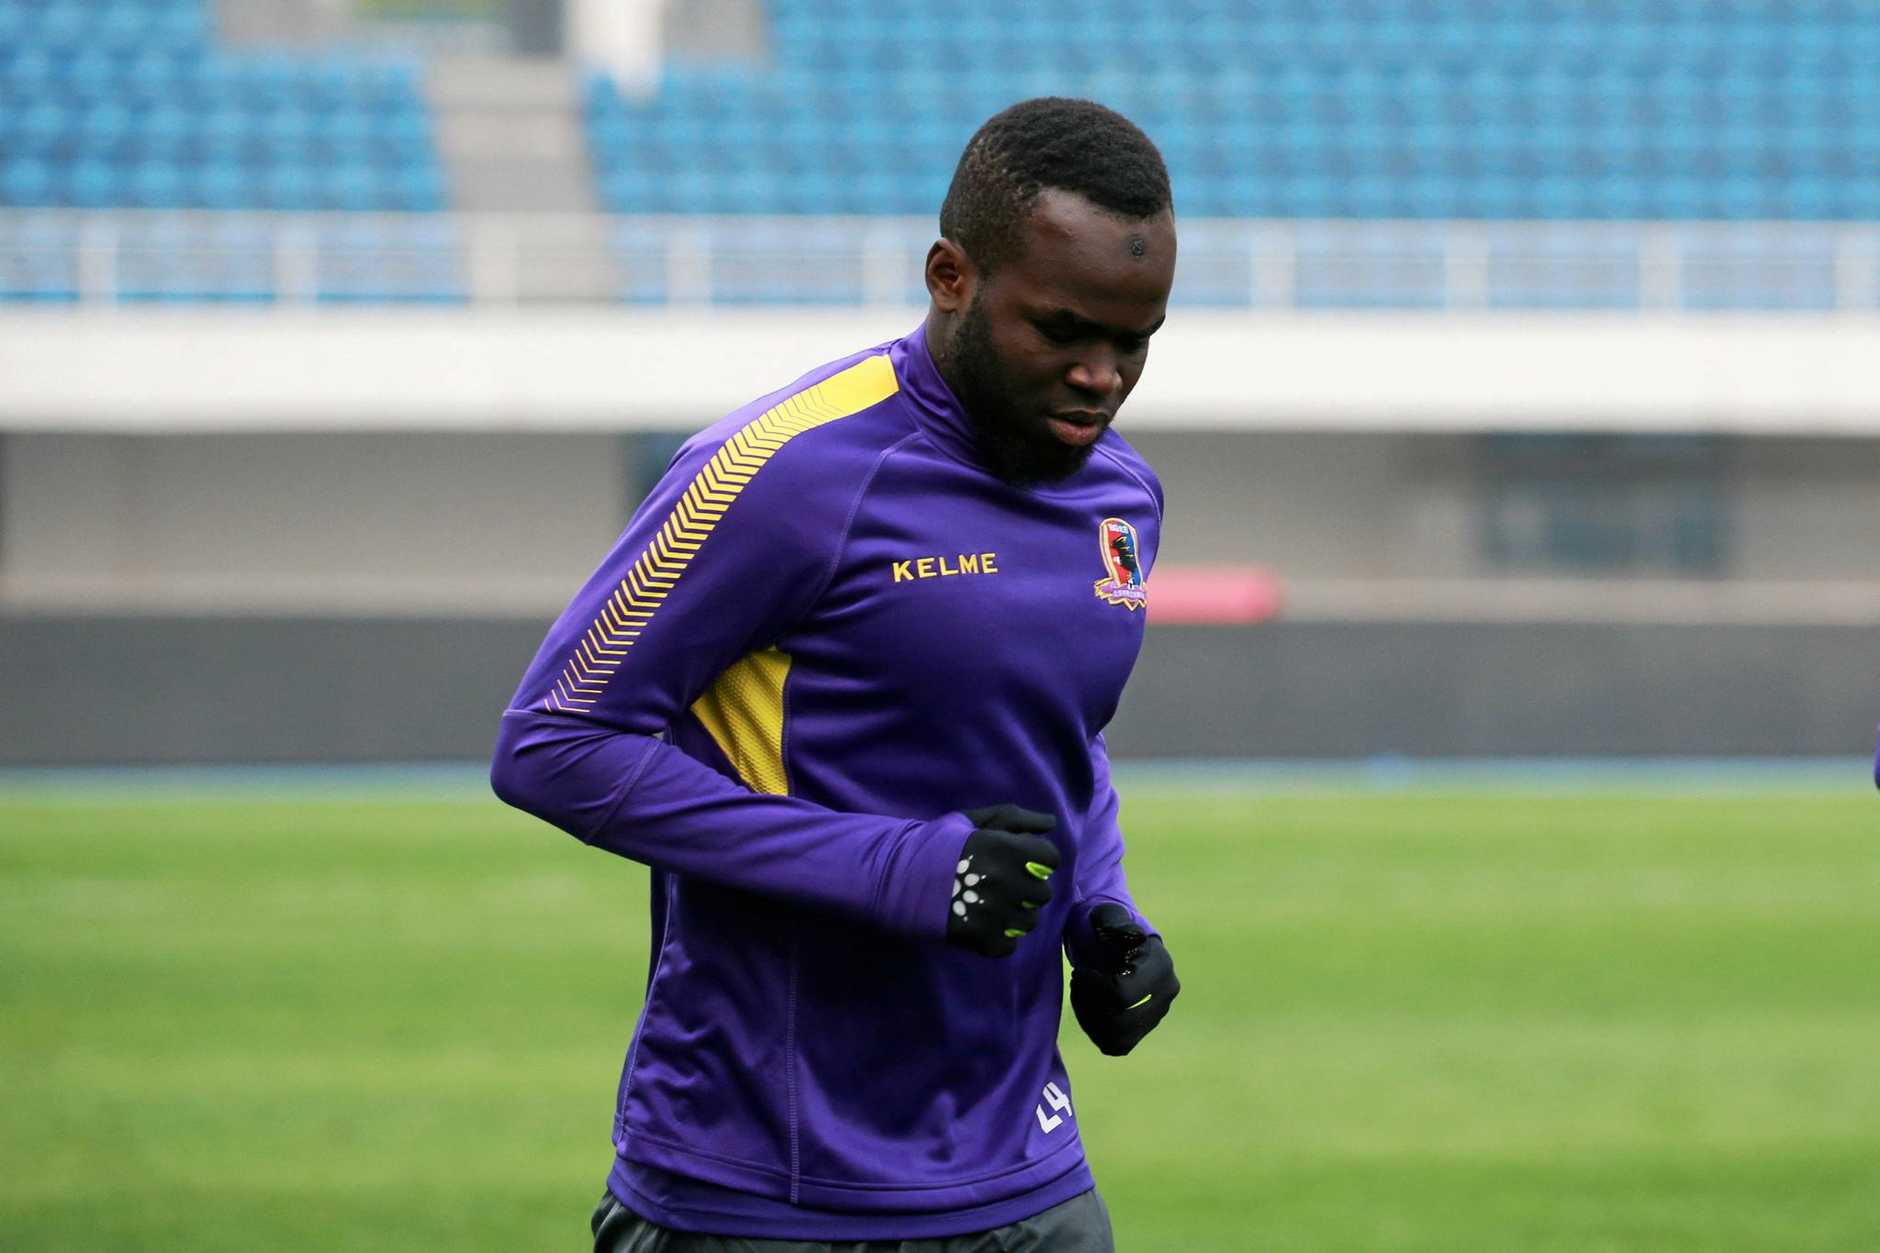 --FILE--Cheick Tiote of Beijing Enterprises Group F.C. takes part in a training session for their 4th round match against Shijiazhuang Ever Bright F.C. during the 2017 Chinese Football Association China League, also known as China League One, in Beijing, China, 7 April 2017.Sad news out of China as a soccer player has collapsed during training and died. According to Sky Sports, former Newcastle midfielder Cheick Tiote collapsed on Monday (5 June 2017) at practice and passed away. He was just 30 years old. The Ivory Coast international moved to China just a few months ago and had been playing from Beijing Enterprises. He was taken to the hospital but passed after emergency treatment.